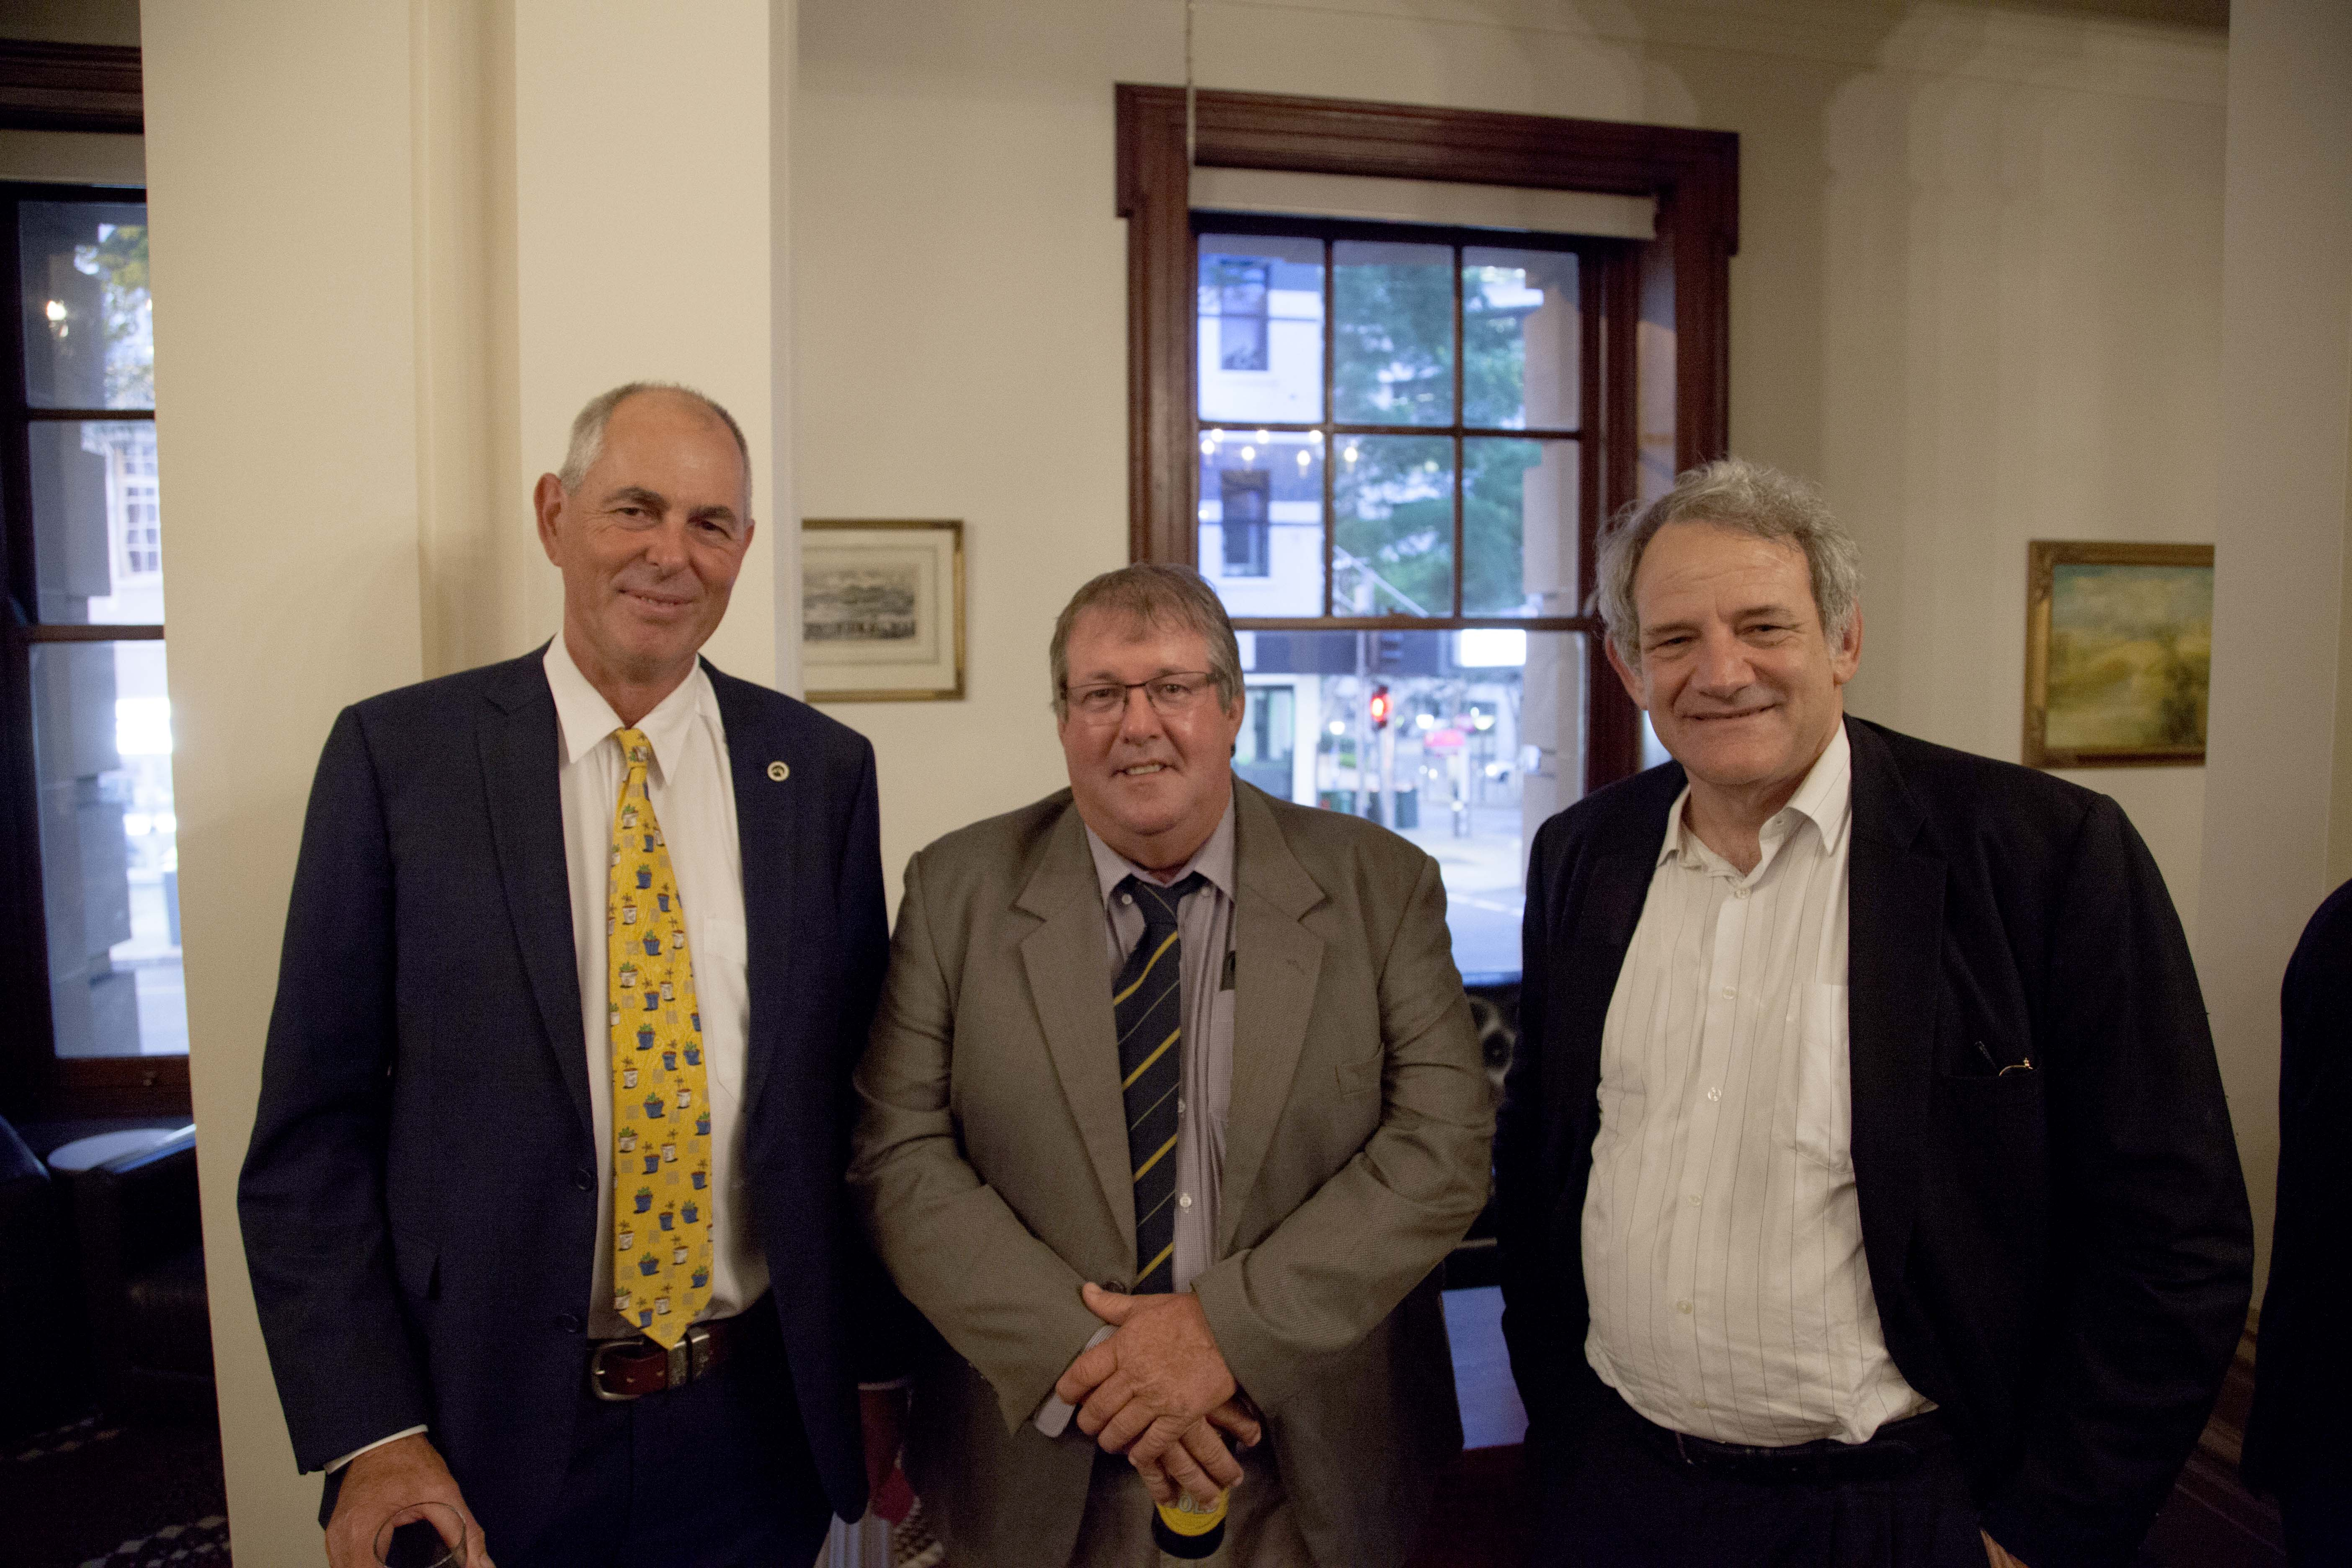 QFF Director John Bunker, CANEGROWERS Vice-Chair & QFF Vice-President Allan Dingle & Chief of Staff, Office of the Hon. Annastacia Palaszczuk MP David Barbagello